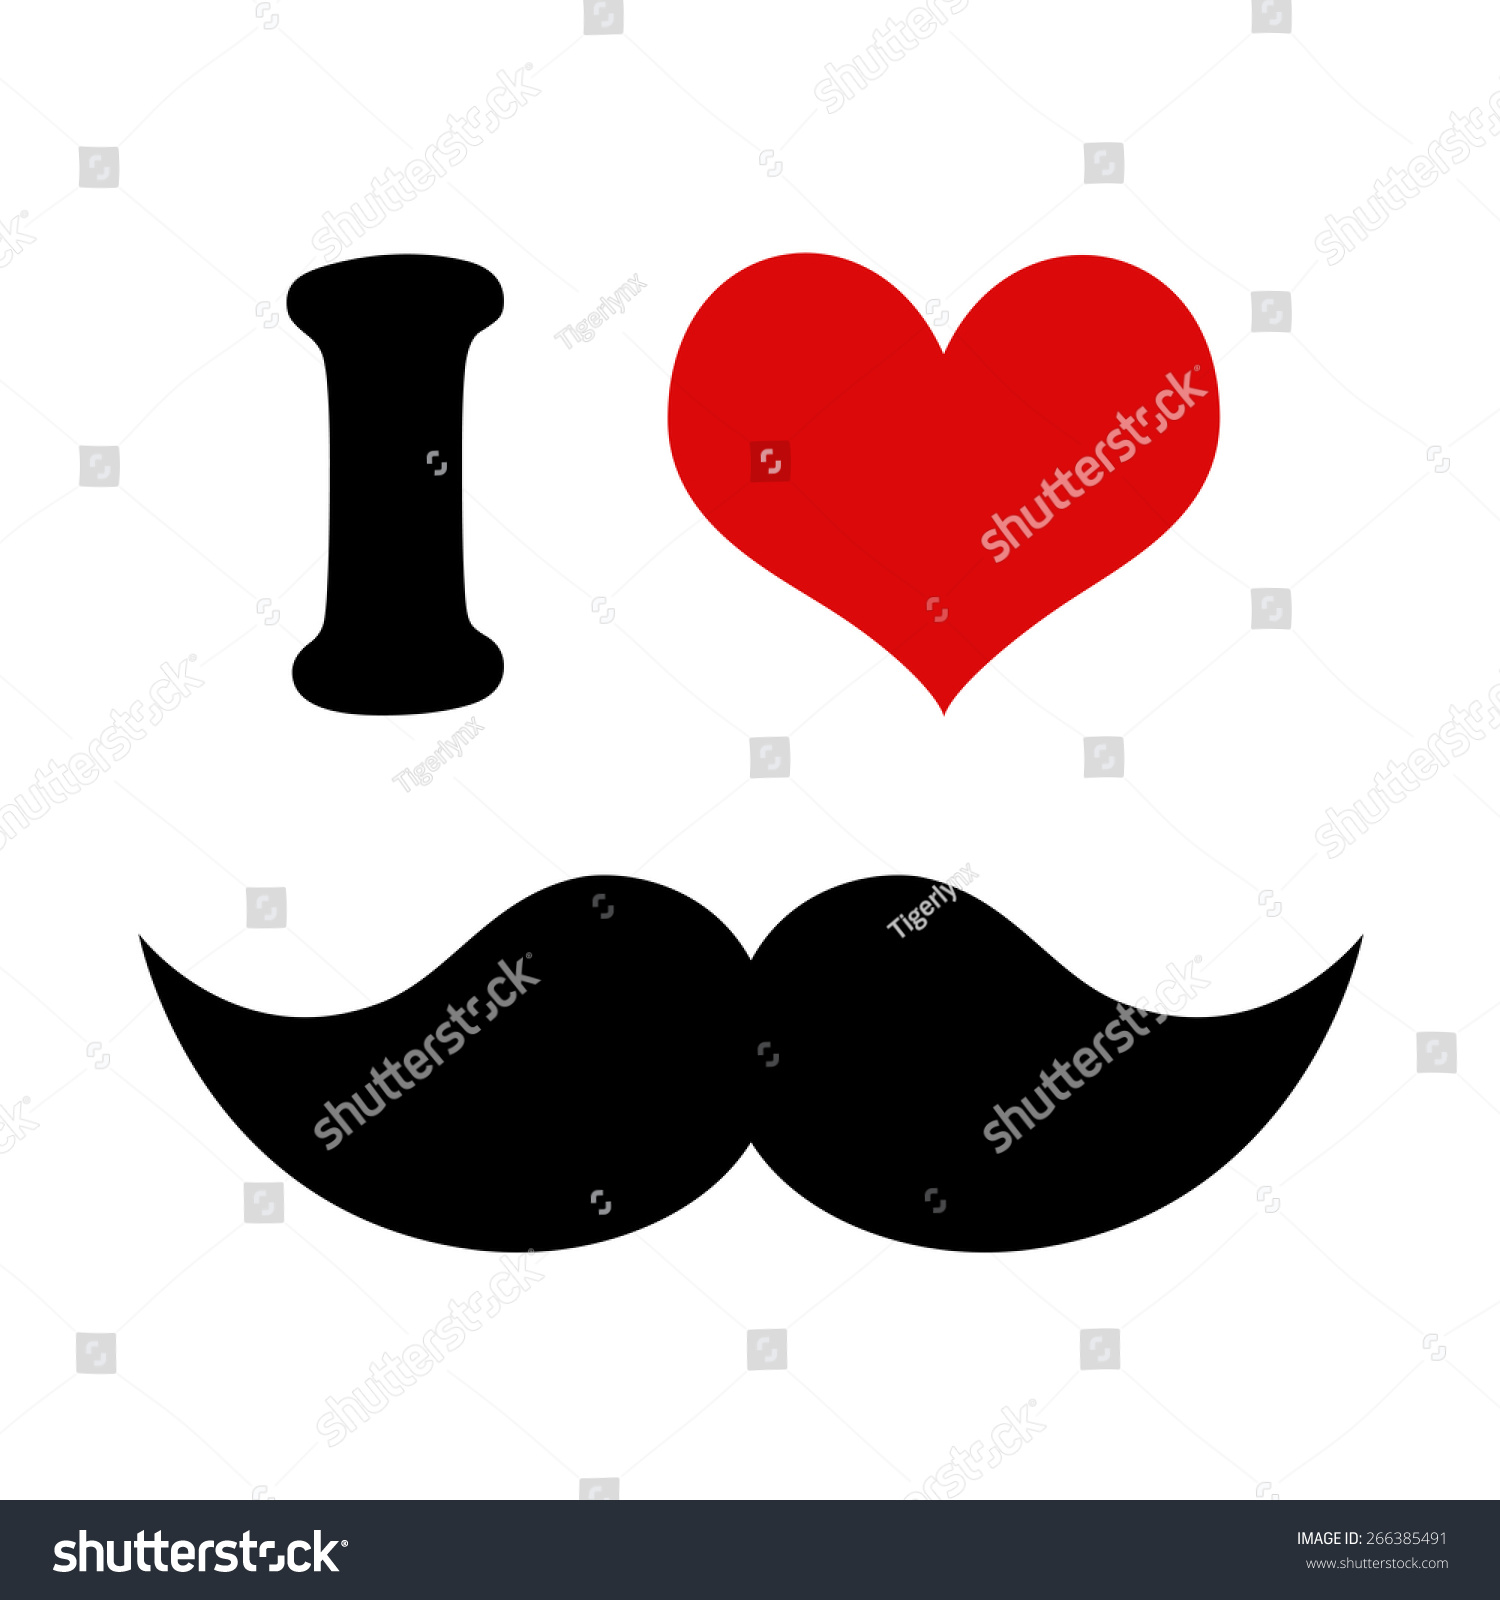 Heart Love Mustaches Graphic Black Mustache Stock Illustration